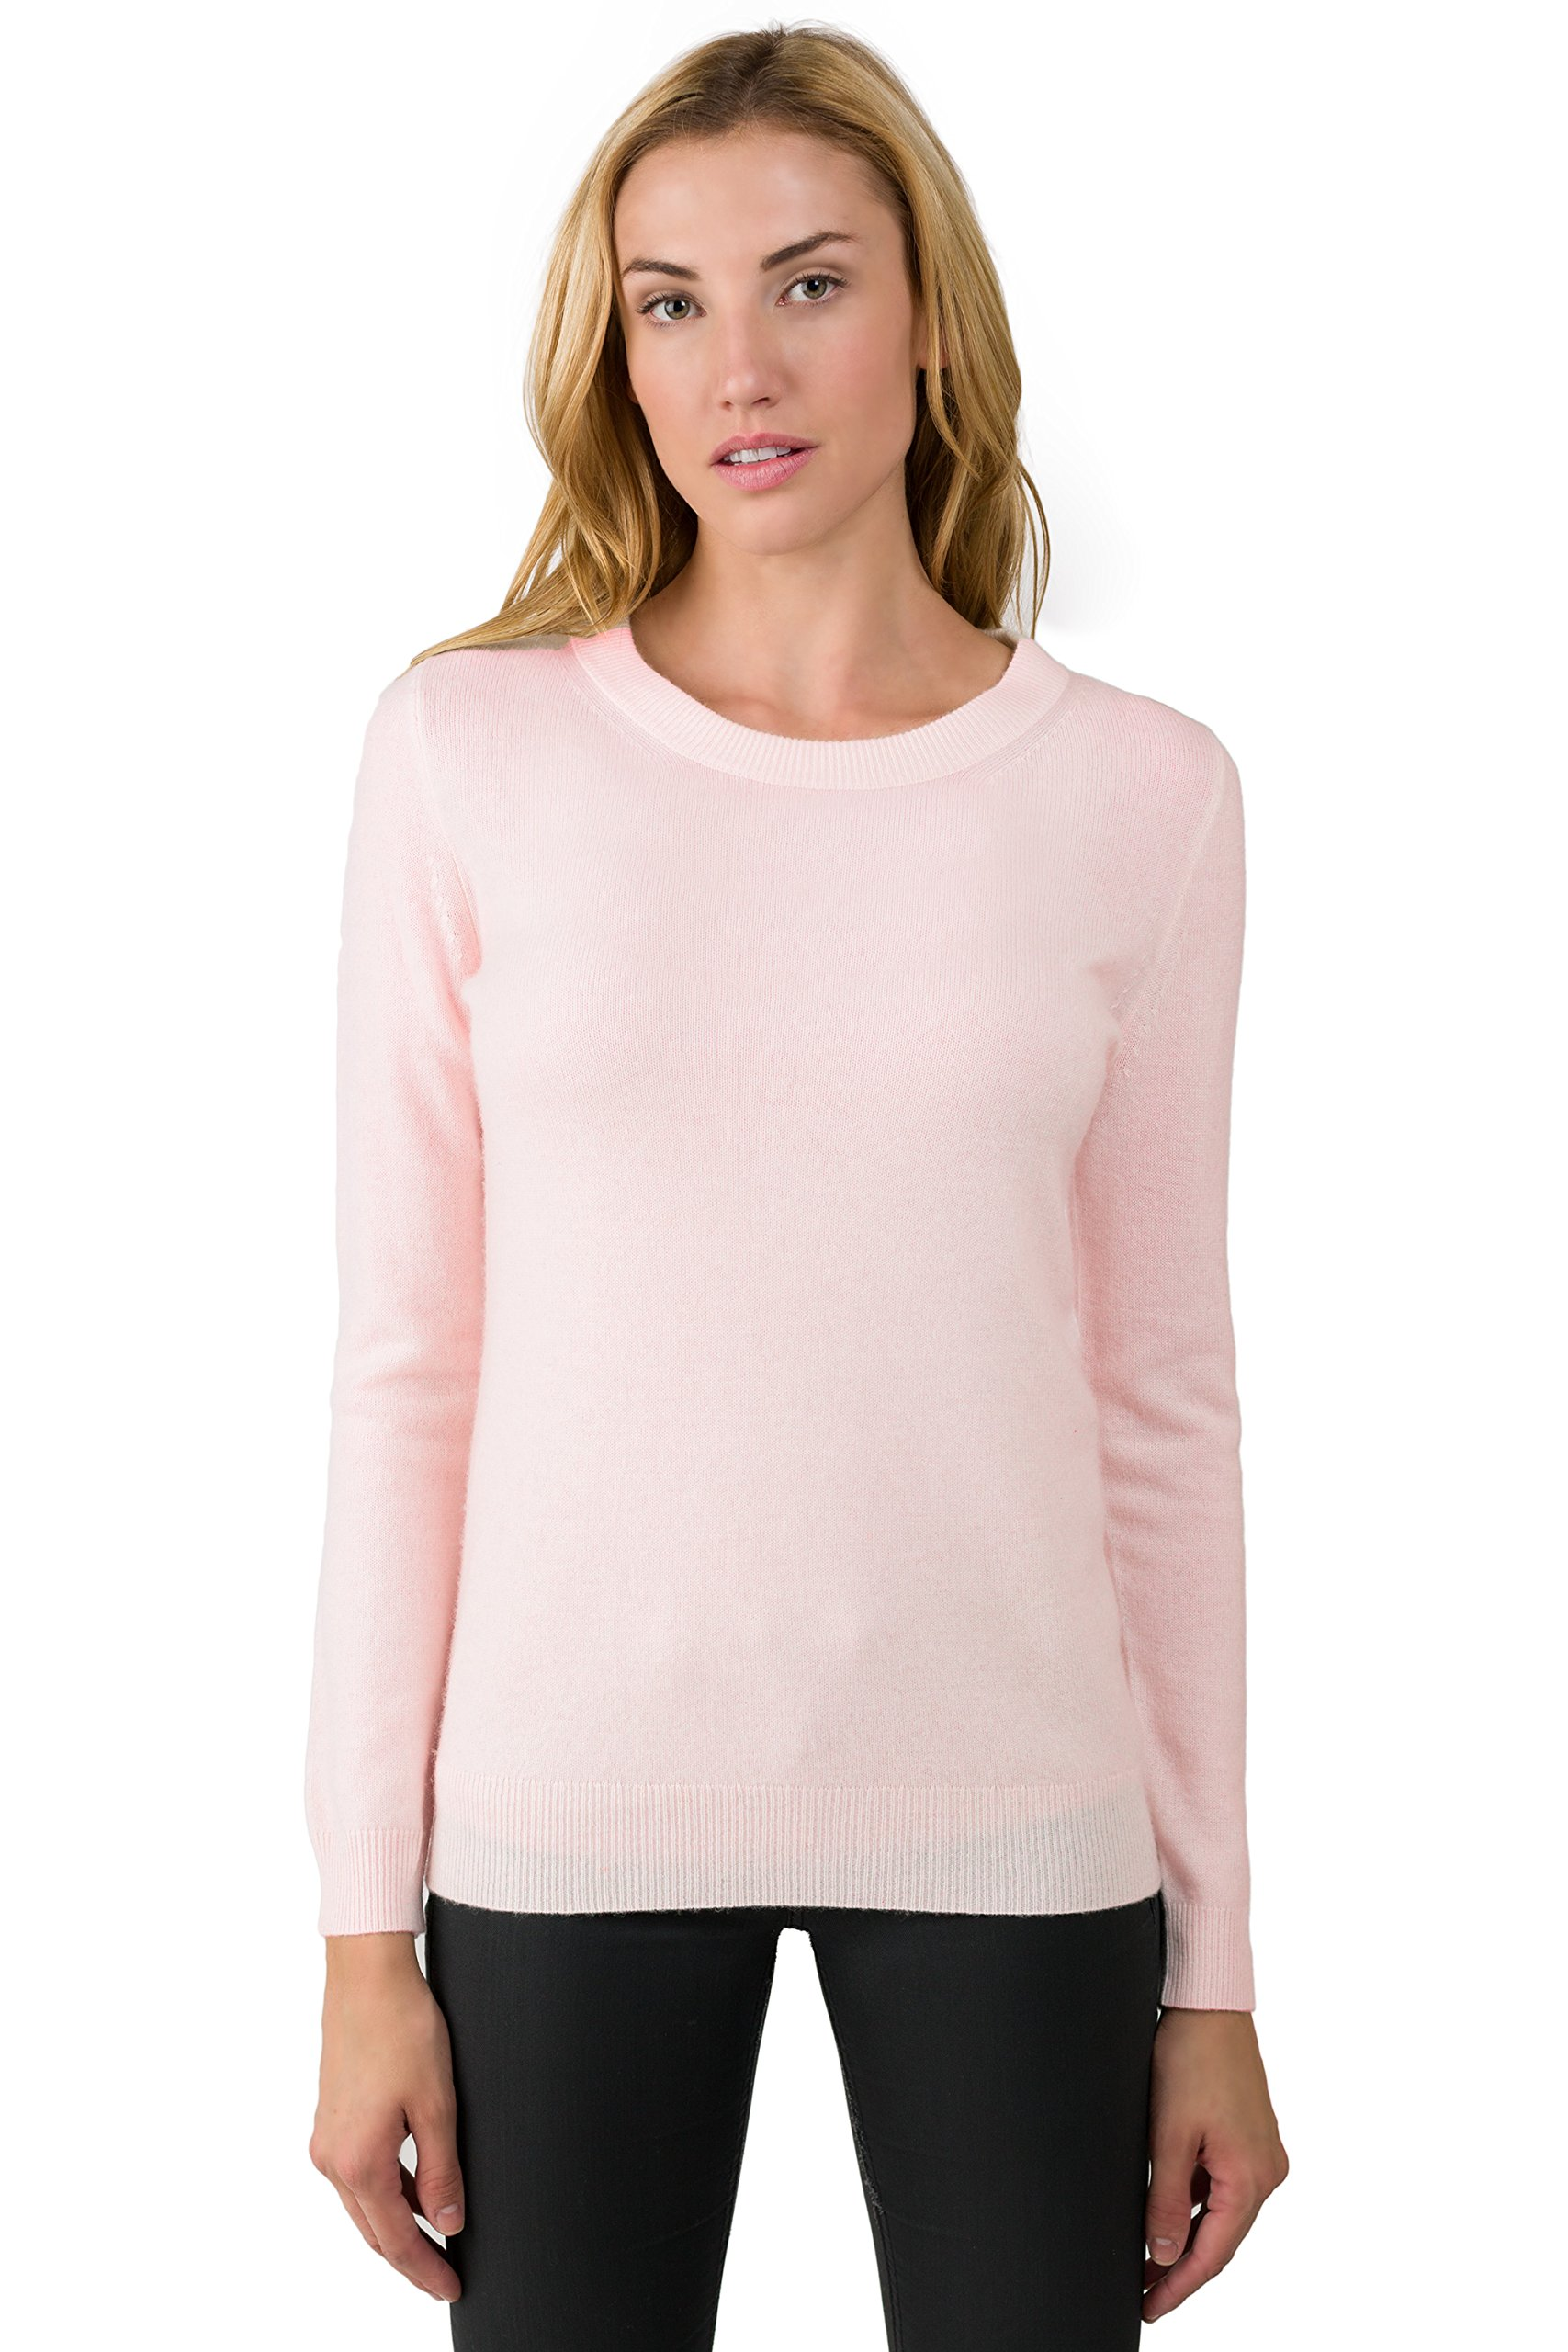 JENNIE LIU Women's 100% Pure Cashmere Long Sleeve Crew Neck Sweater (M, Petal pink)